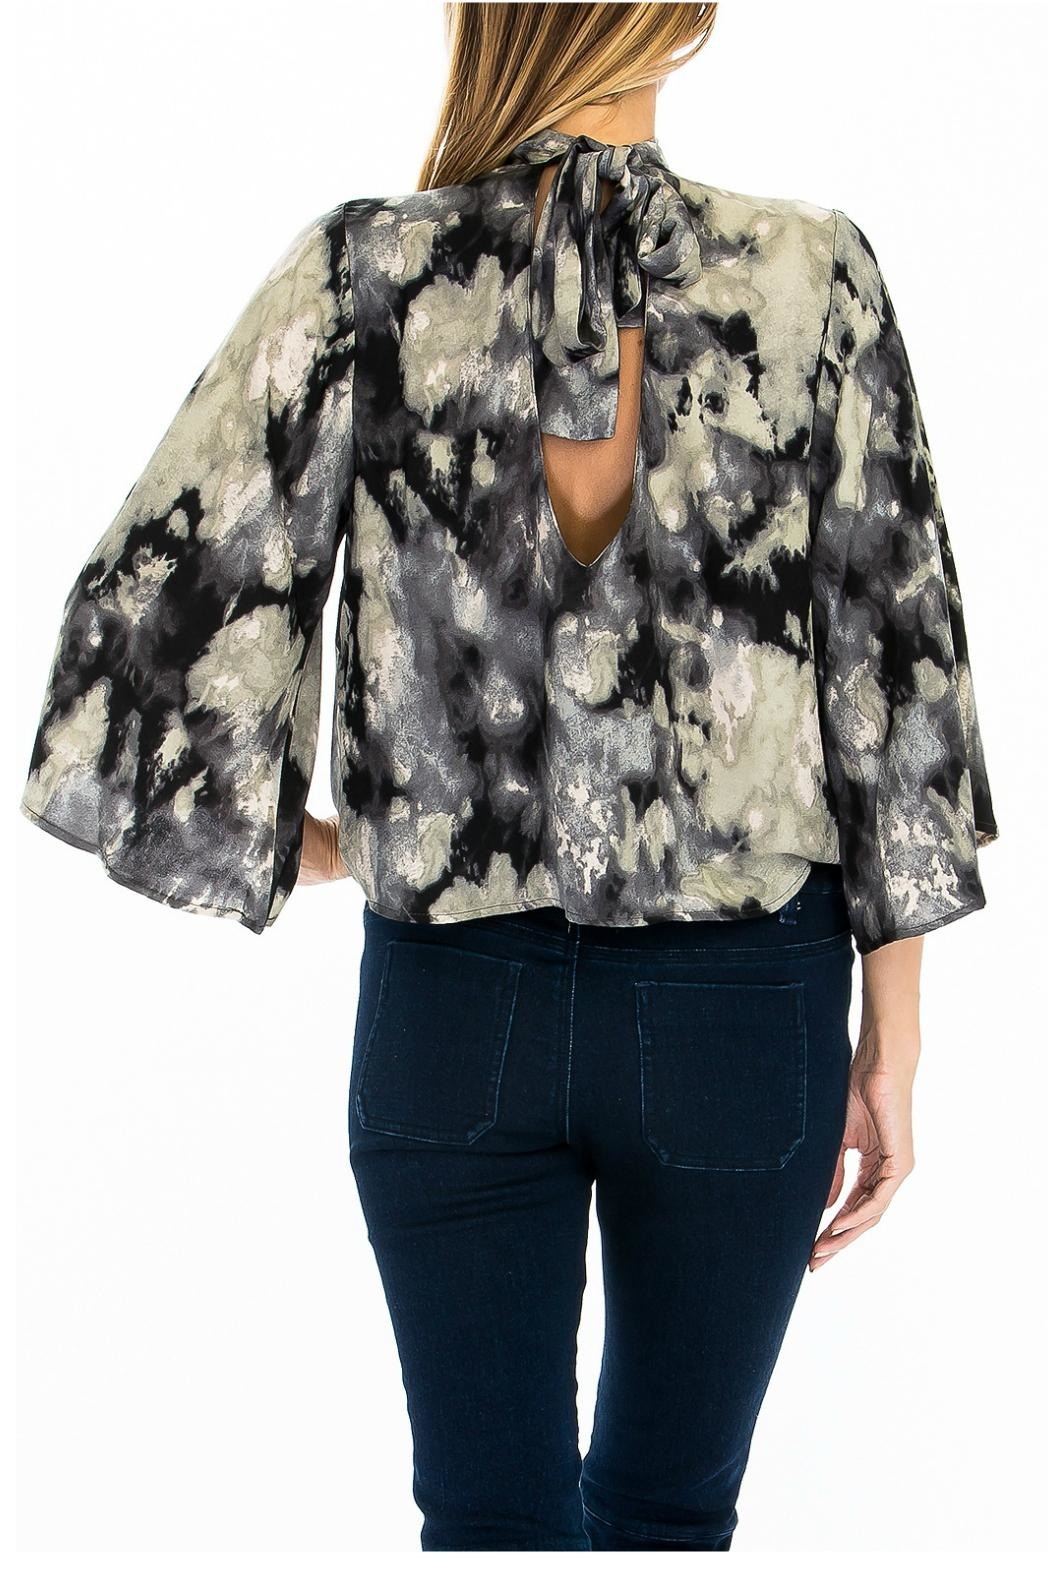 Olivaceous Print Choker Blouse - Back Cropped Image